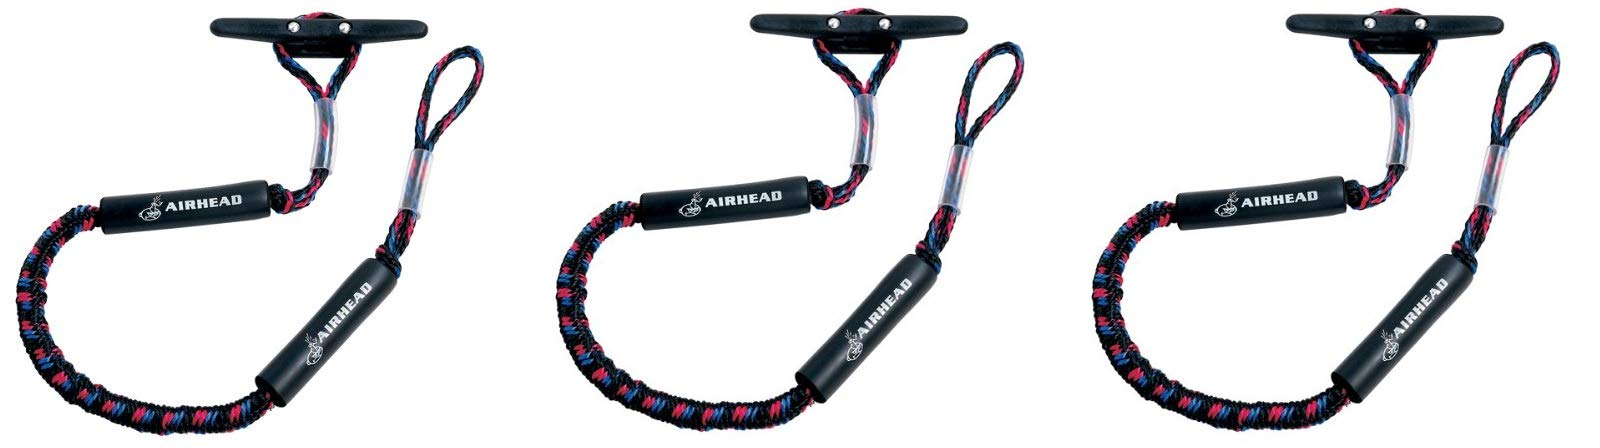 Airhead AHDL-4 Bungee Dockline 4 Feet (Pack of 3) by Airhead (Image #1)